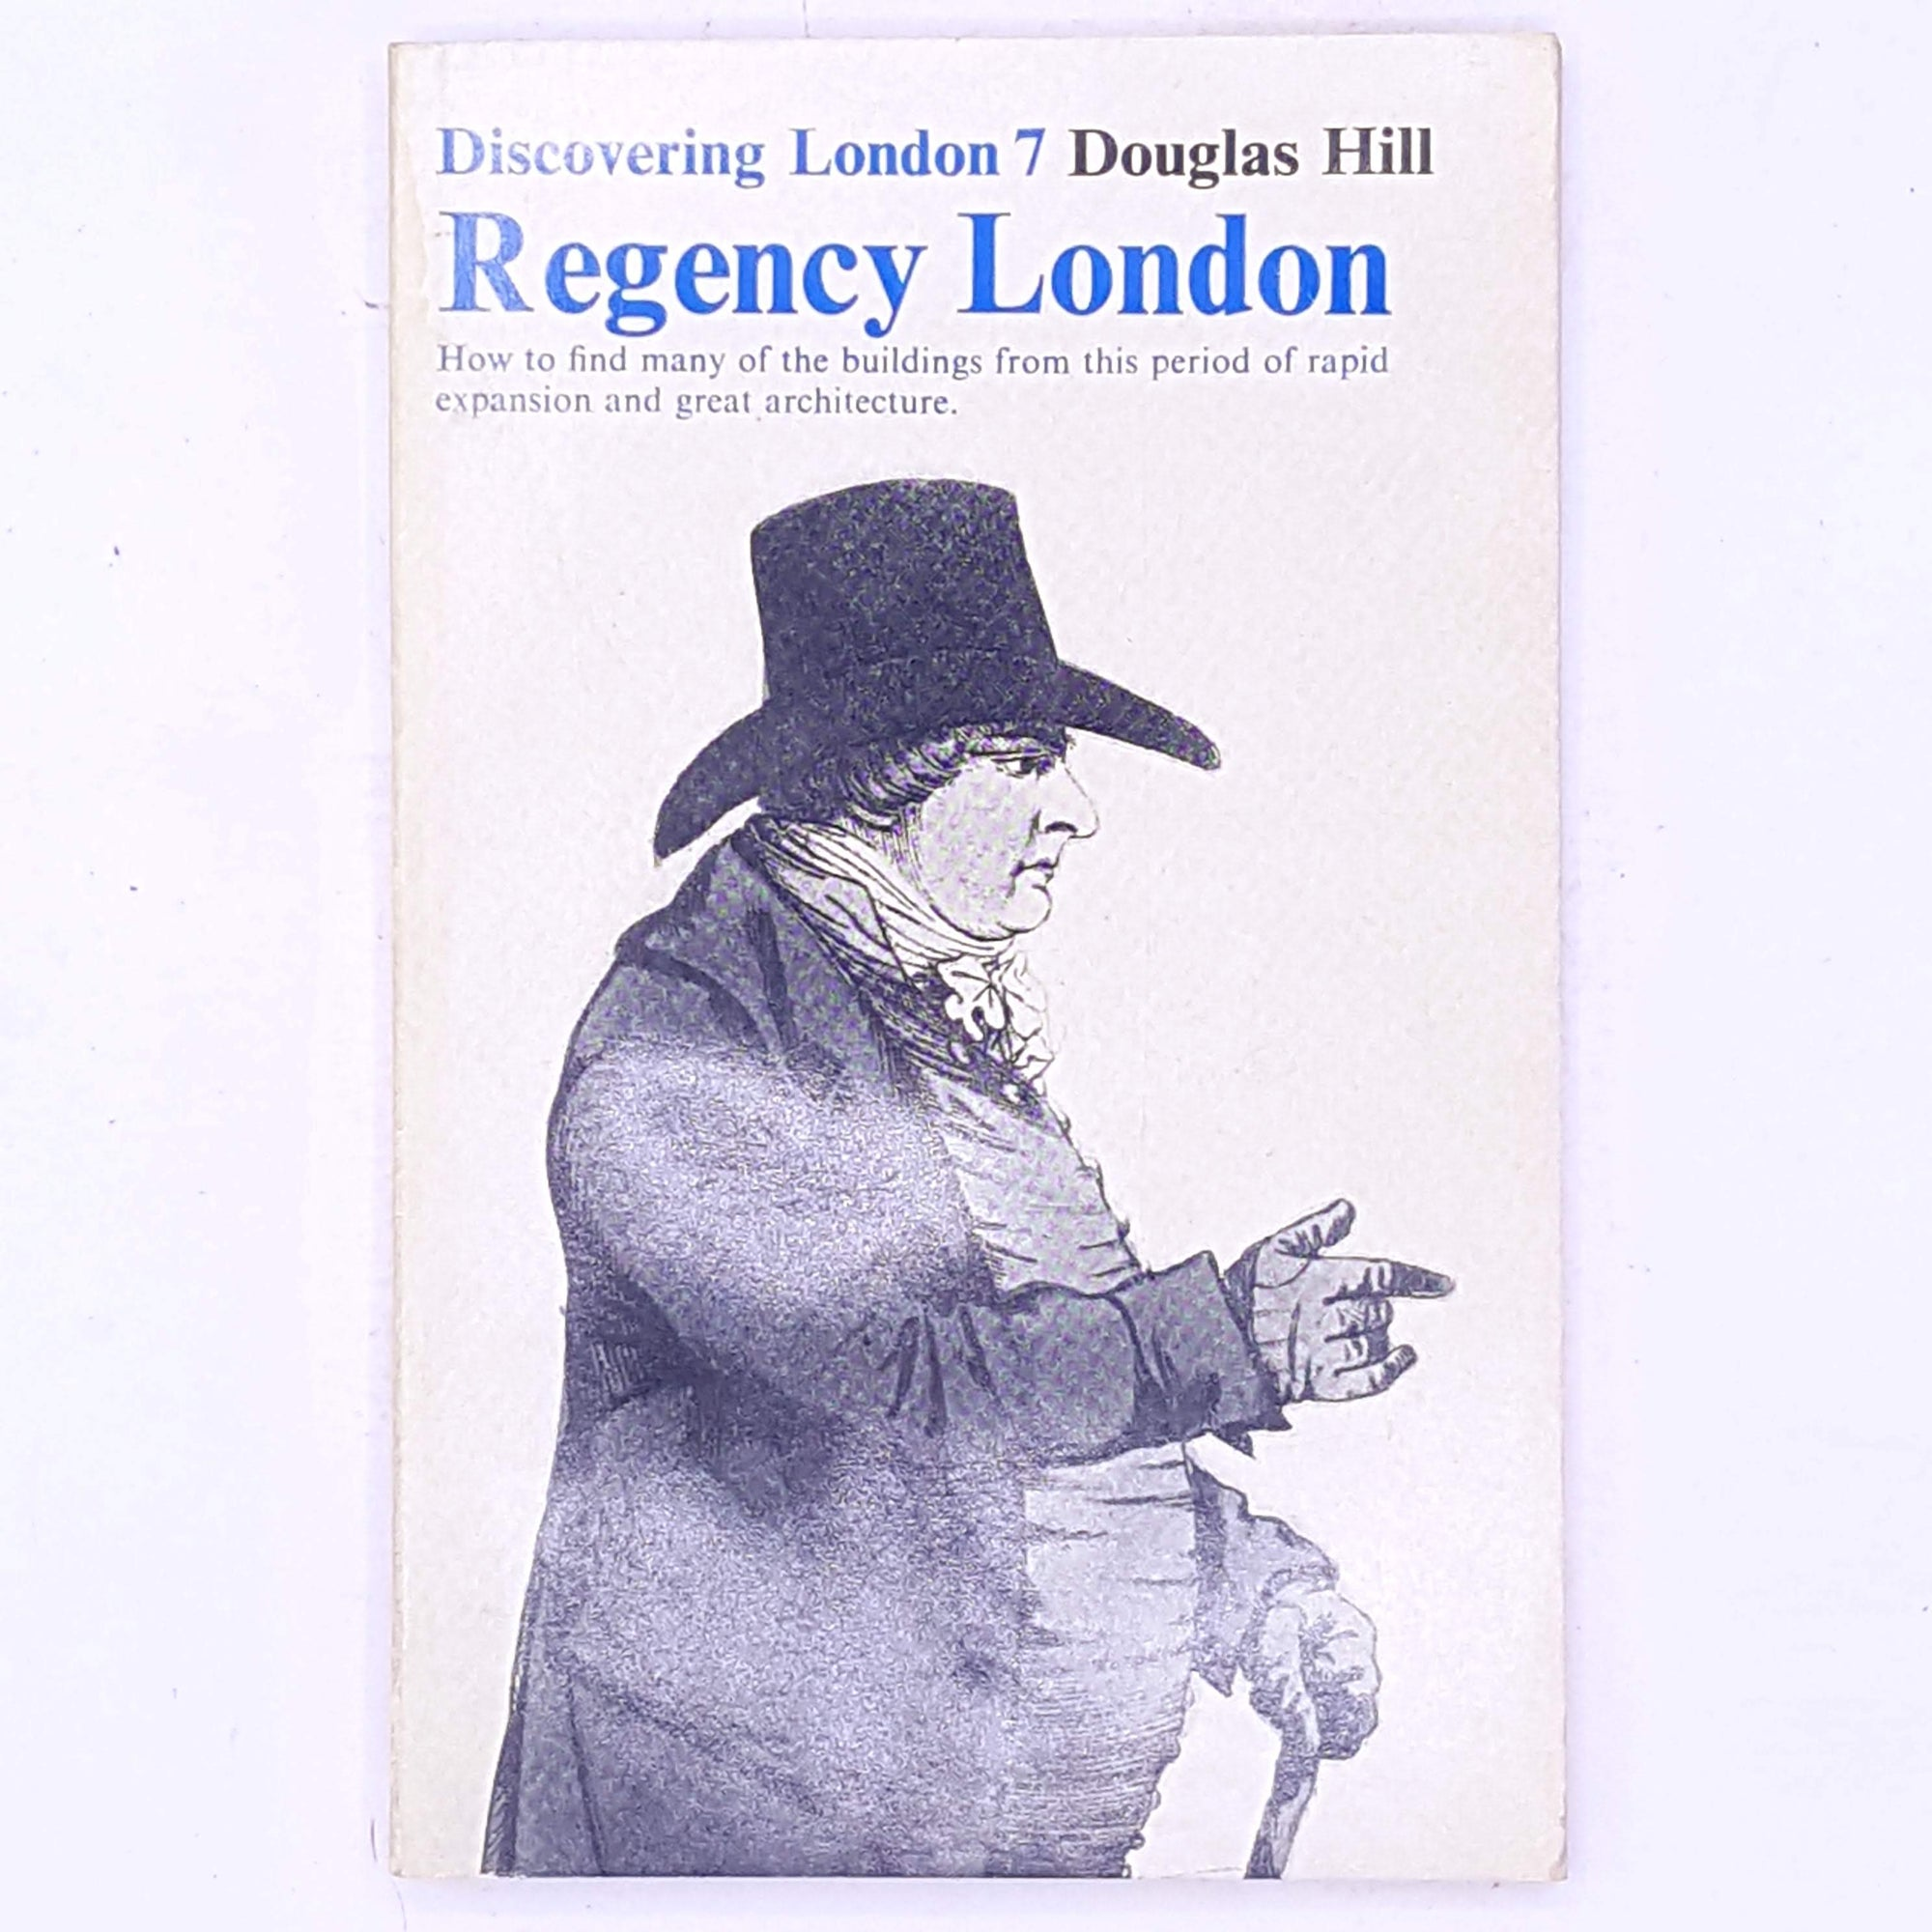 Regency London by Douglas Hill